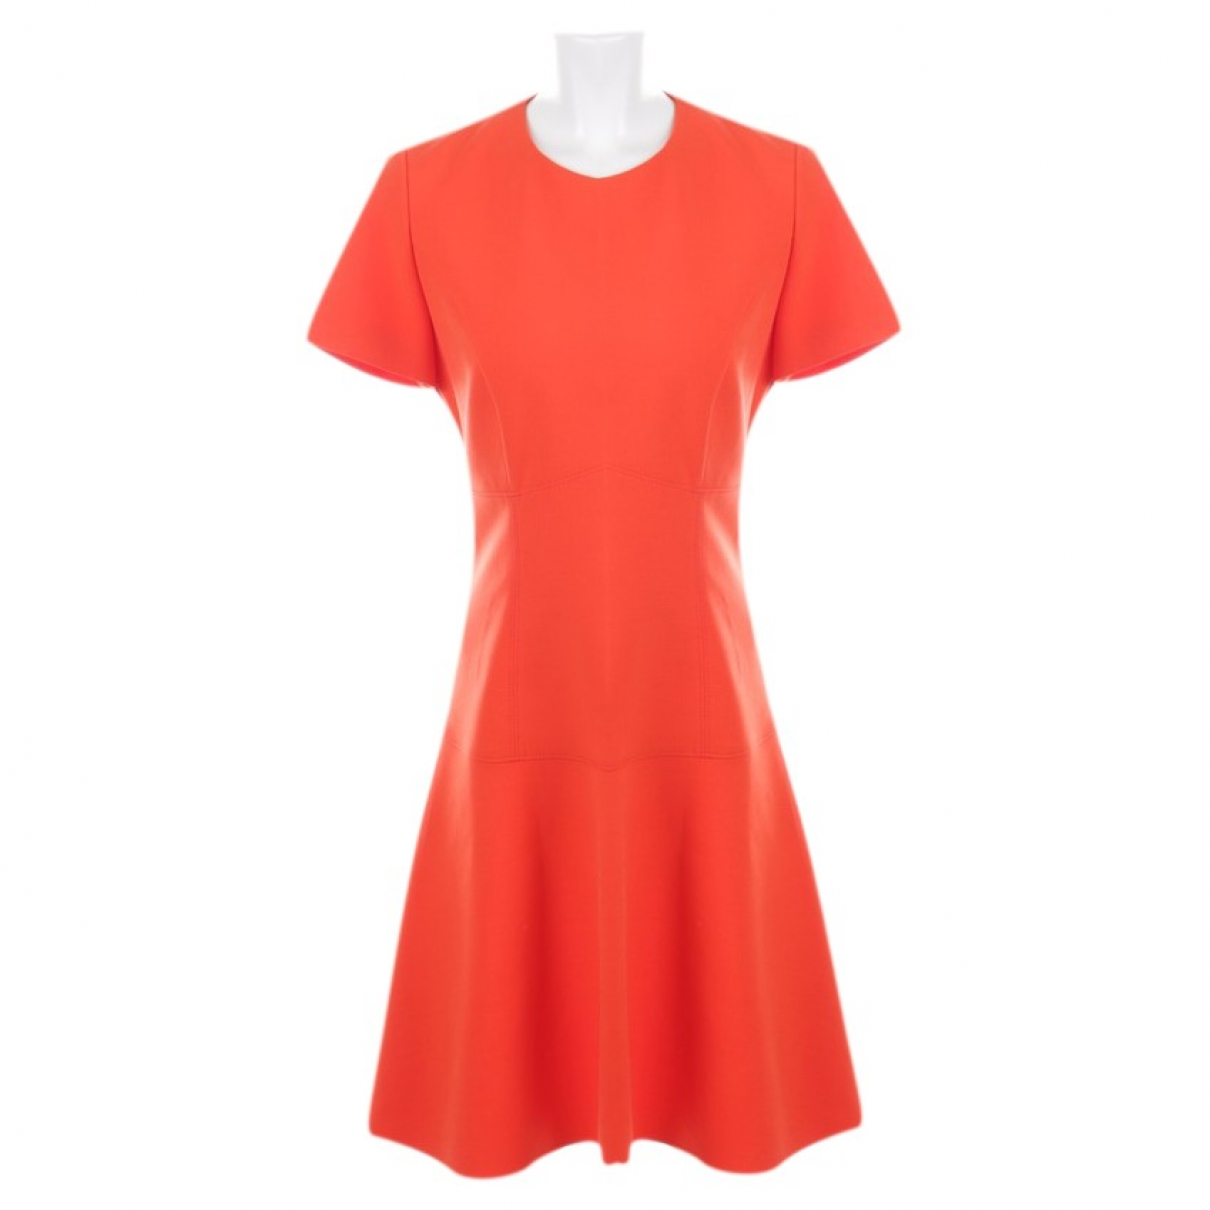 Hugo Boss \N Kleid in  Rot Polyester